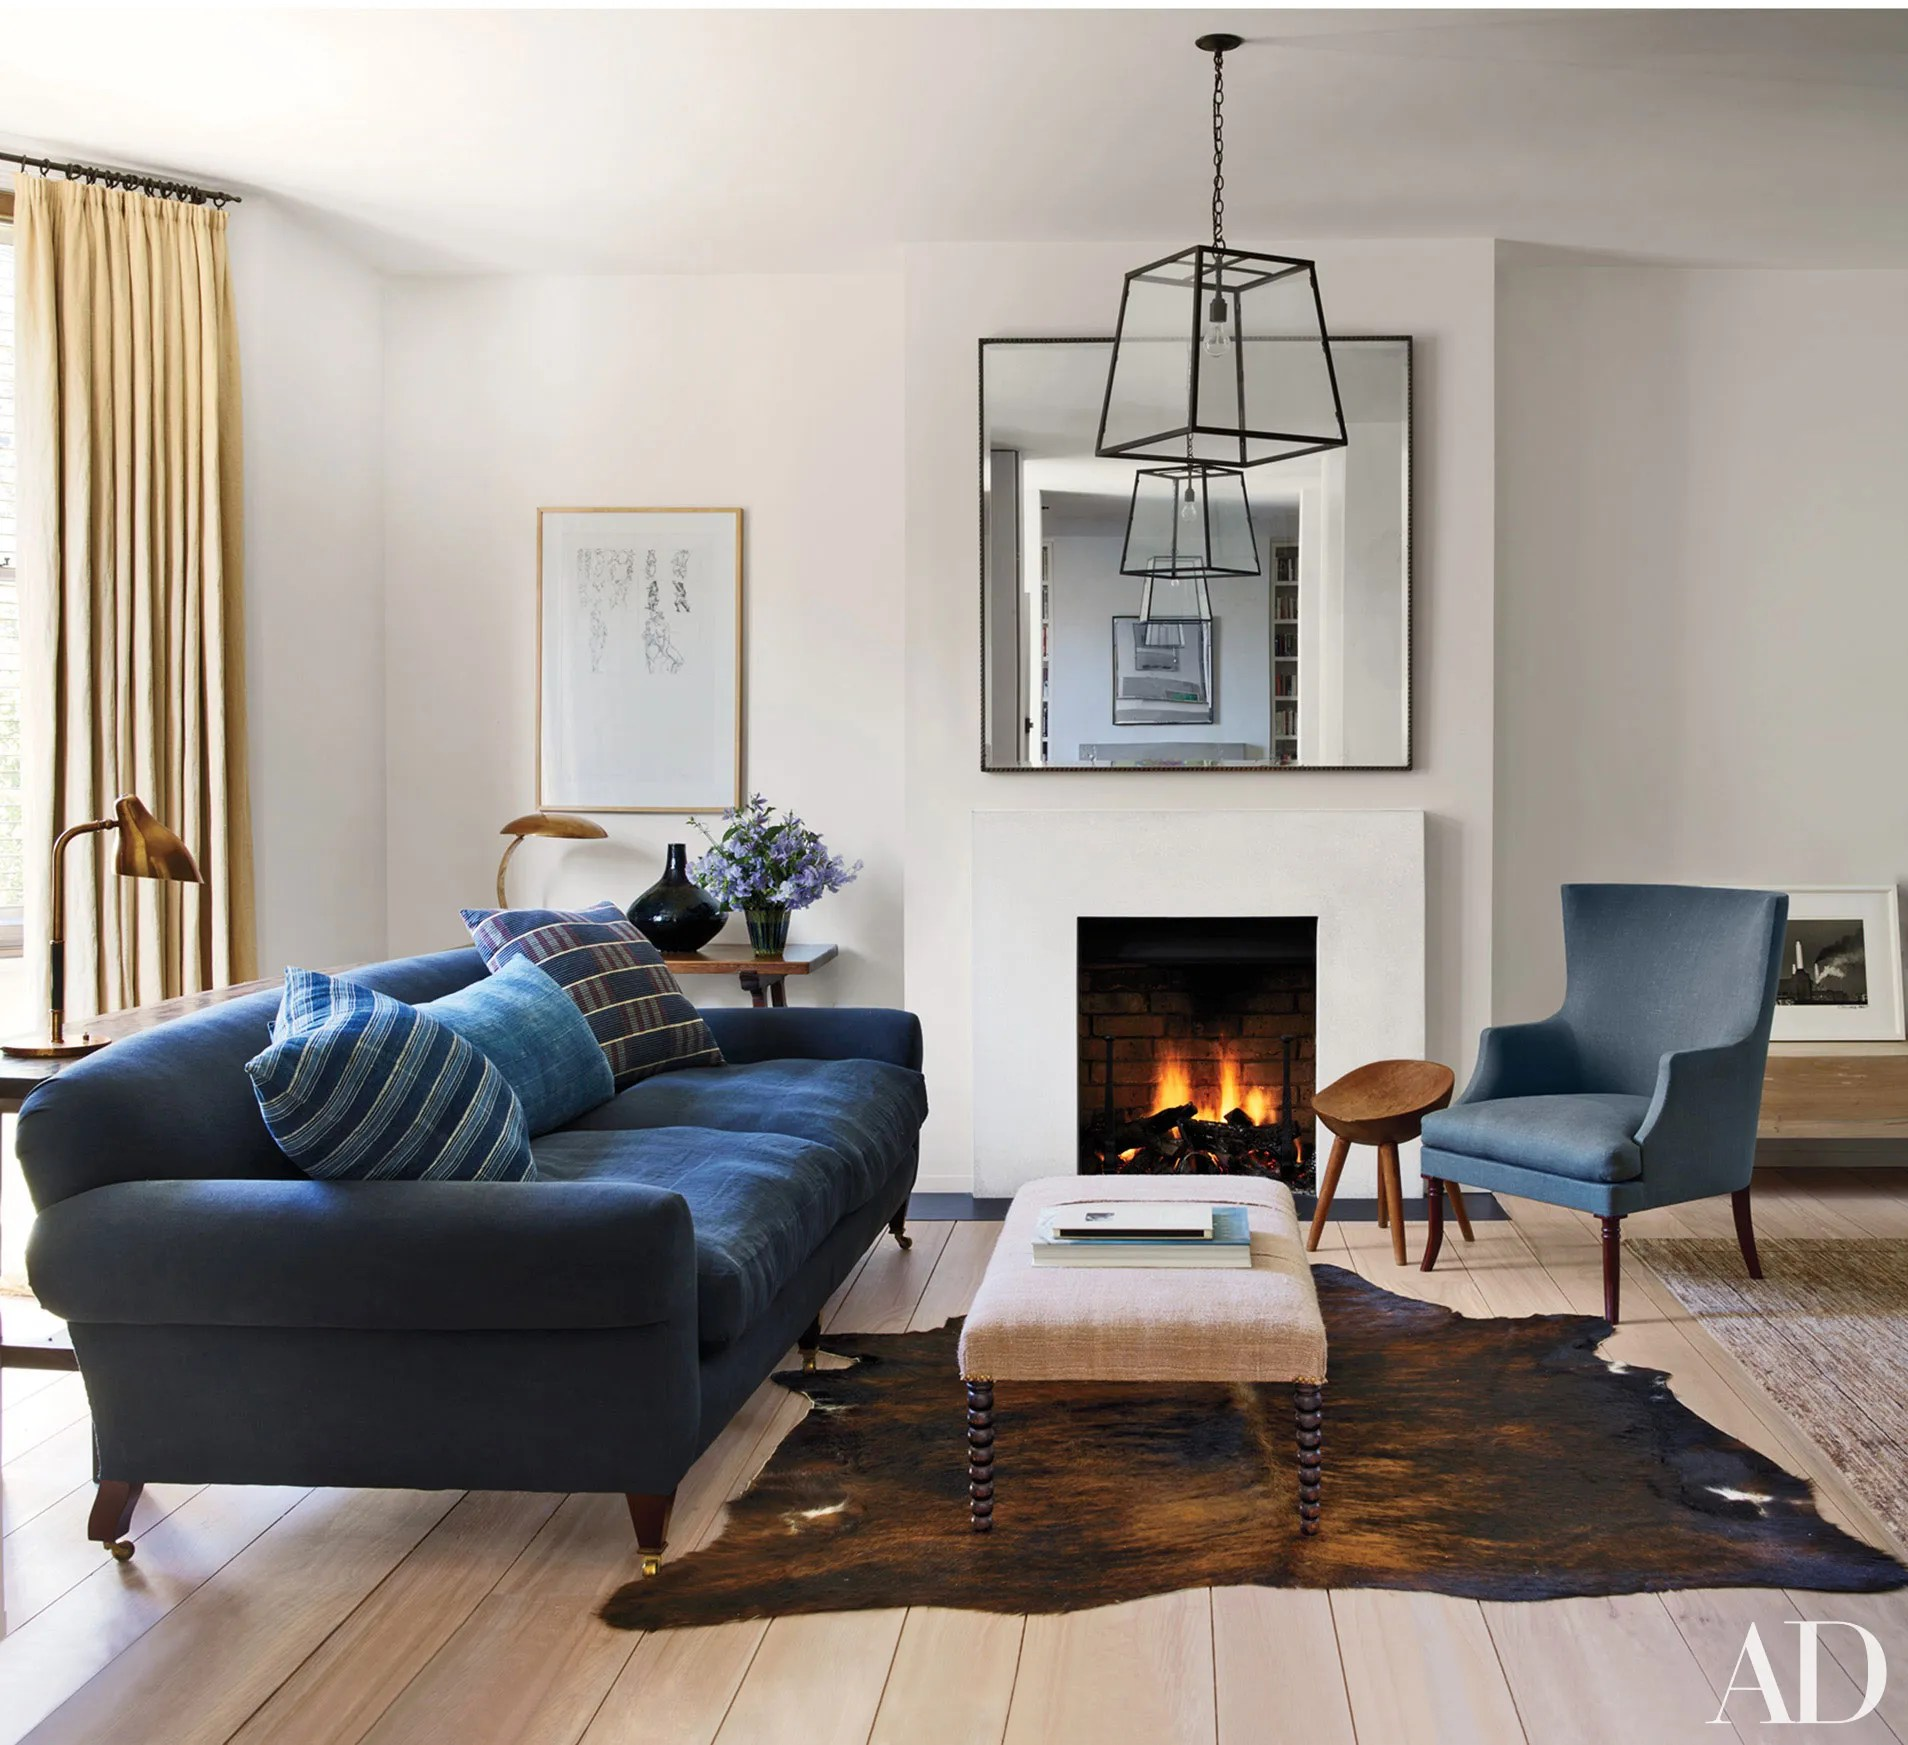 indian inspired living room design images of good rooms rose uniacke transforms screenwriter peter morgan's ...